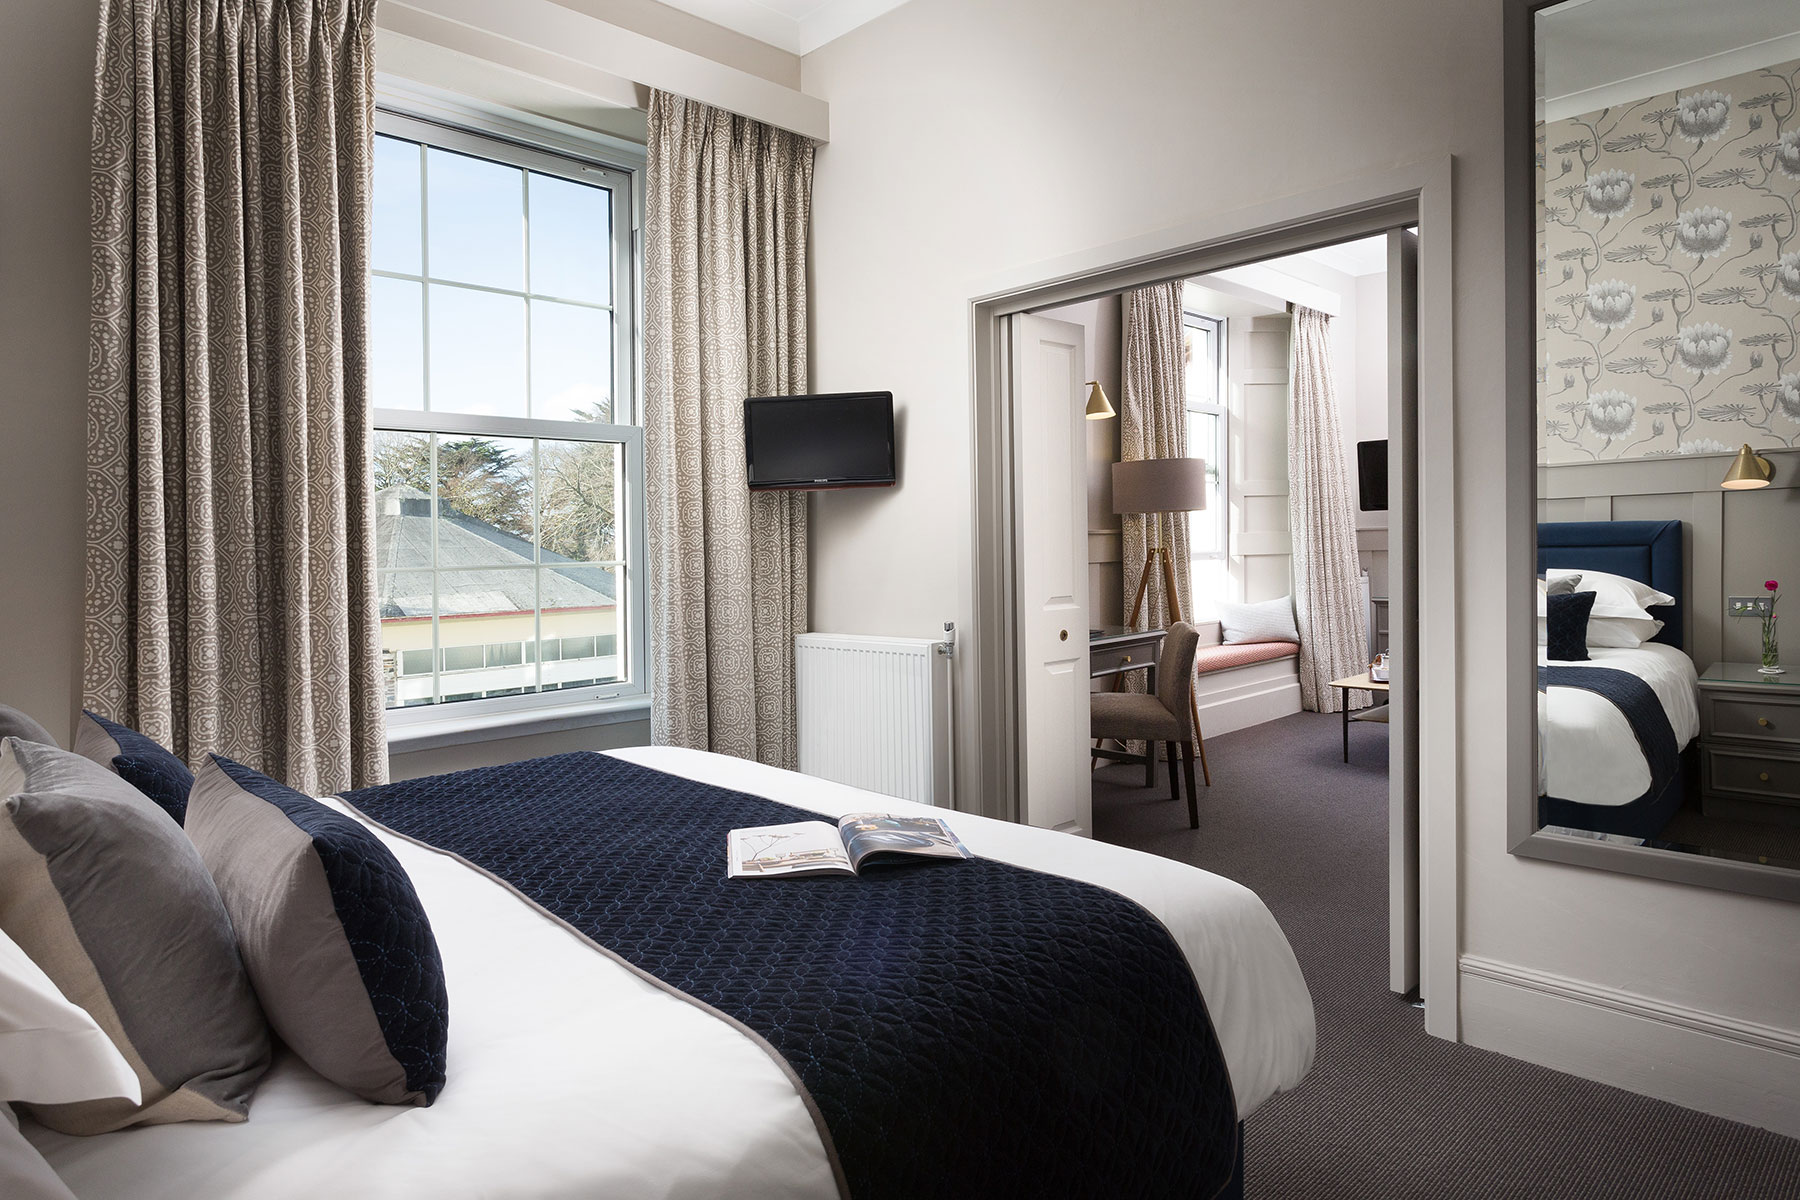 Suite at the Budock Vean